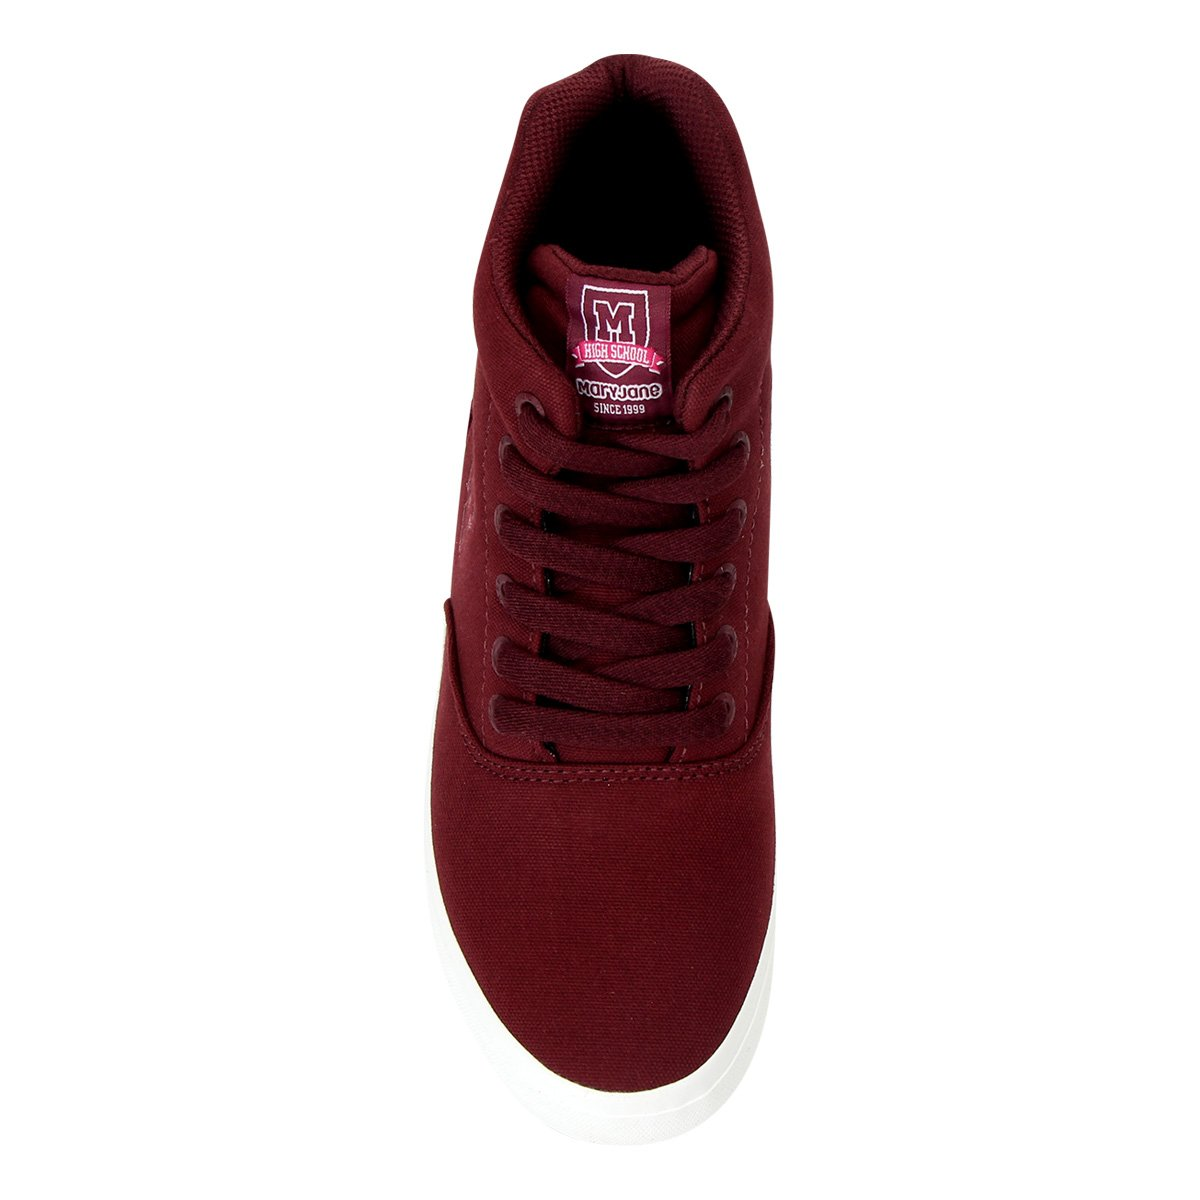 Tenis Mary Jane Bordo Feminino 4141